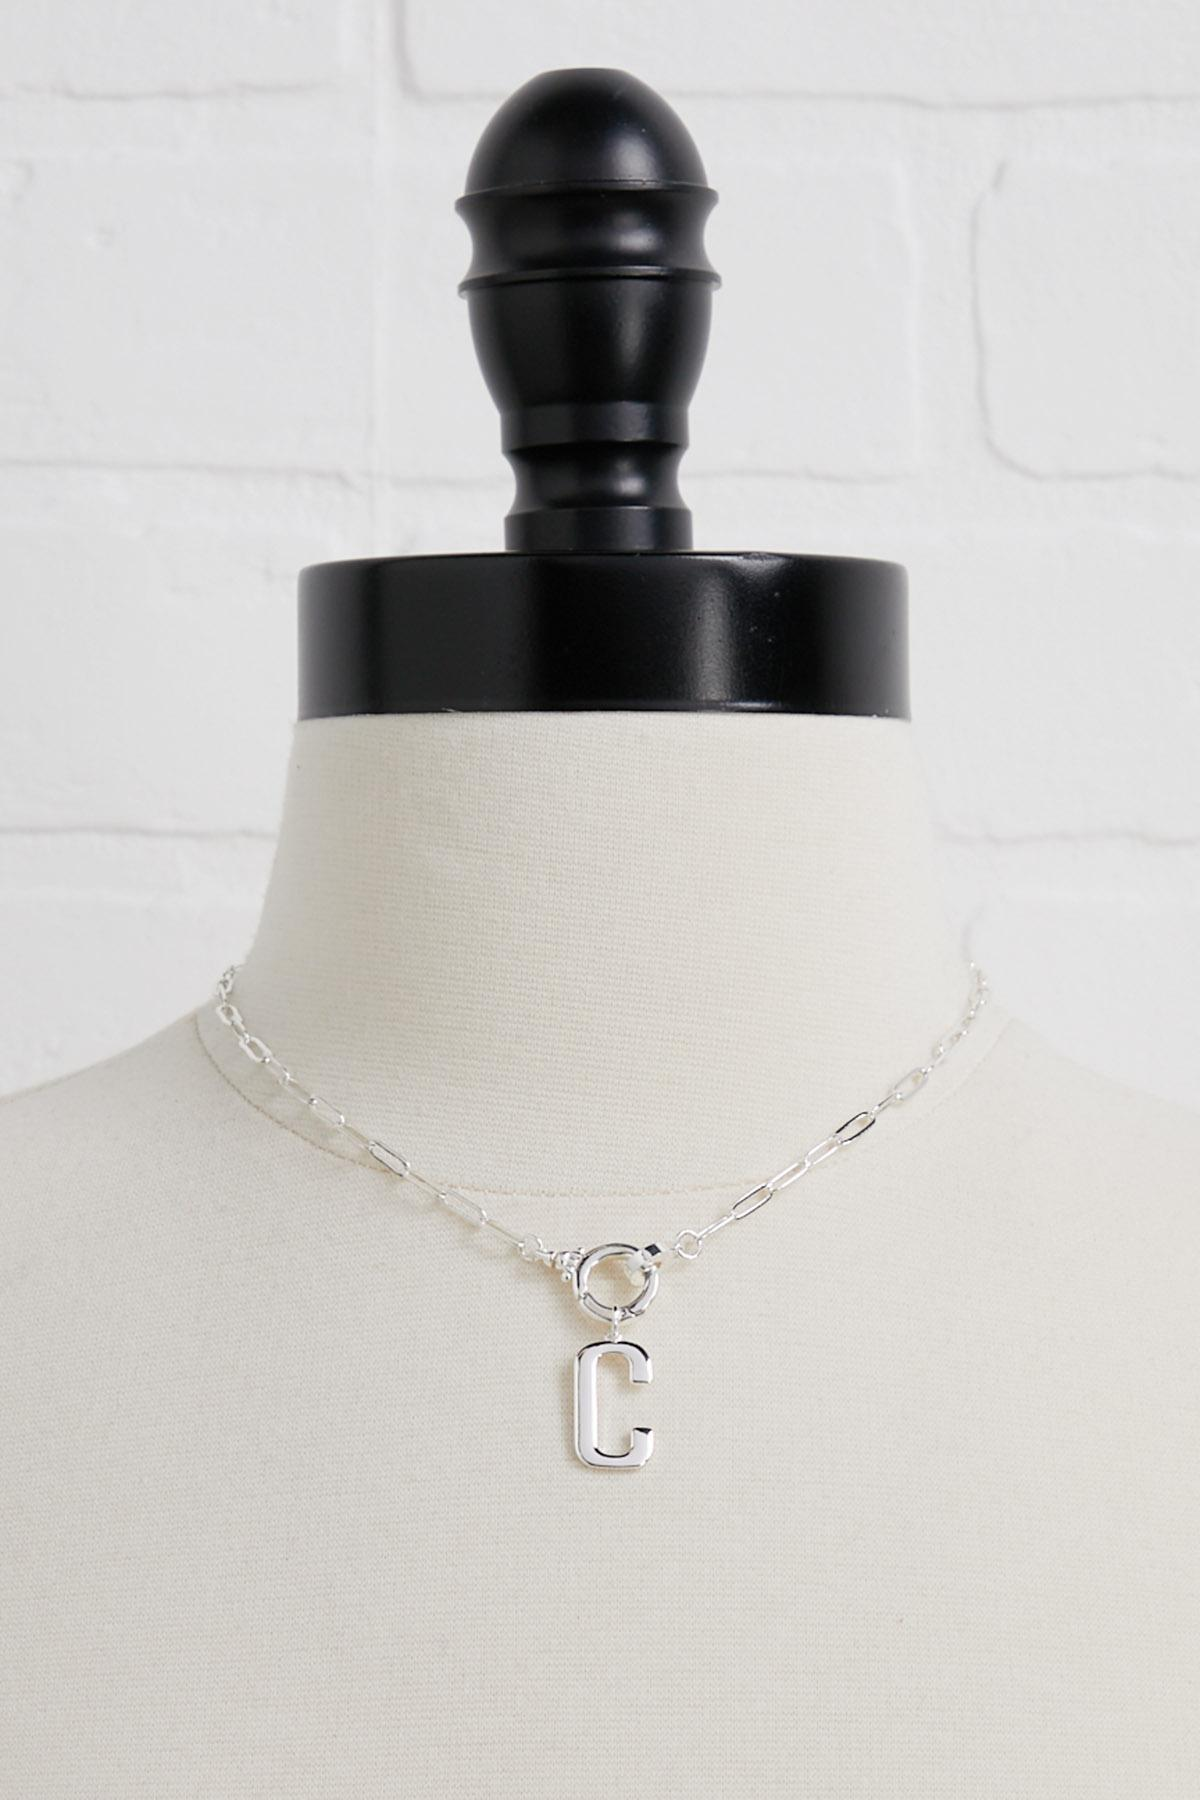 Silver Plated C Initial Charm